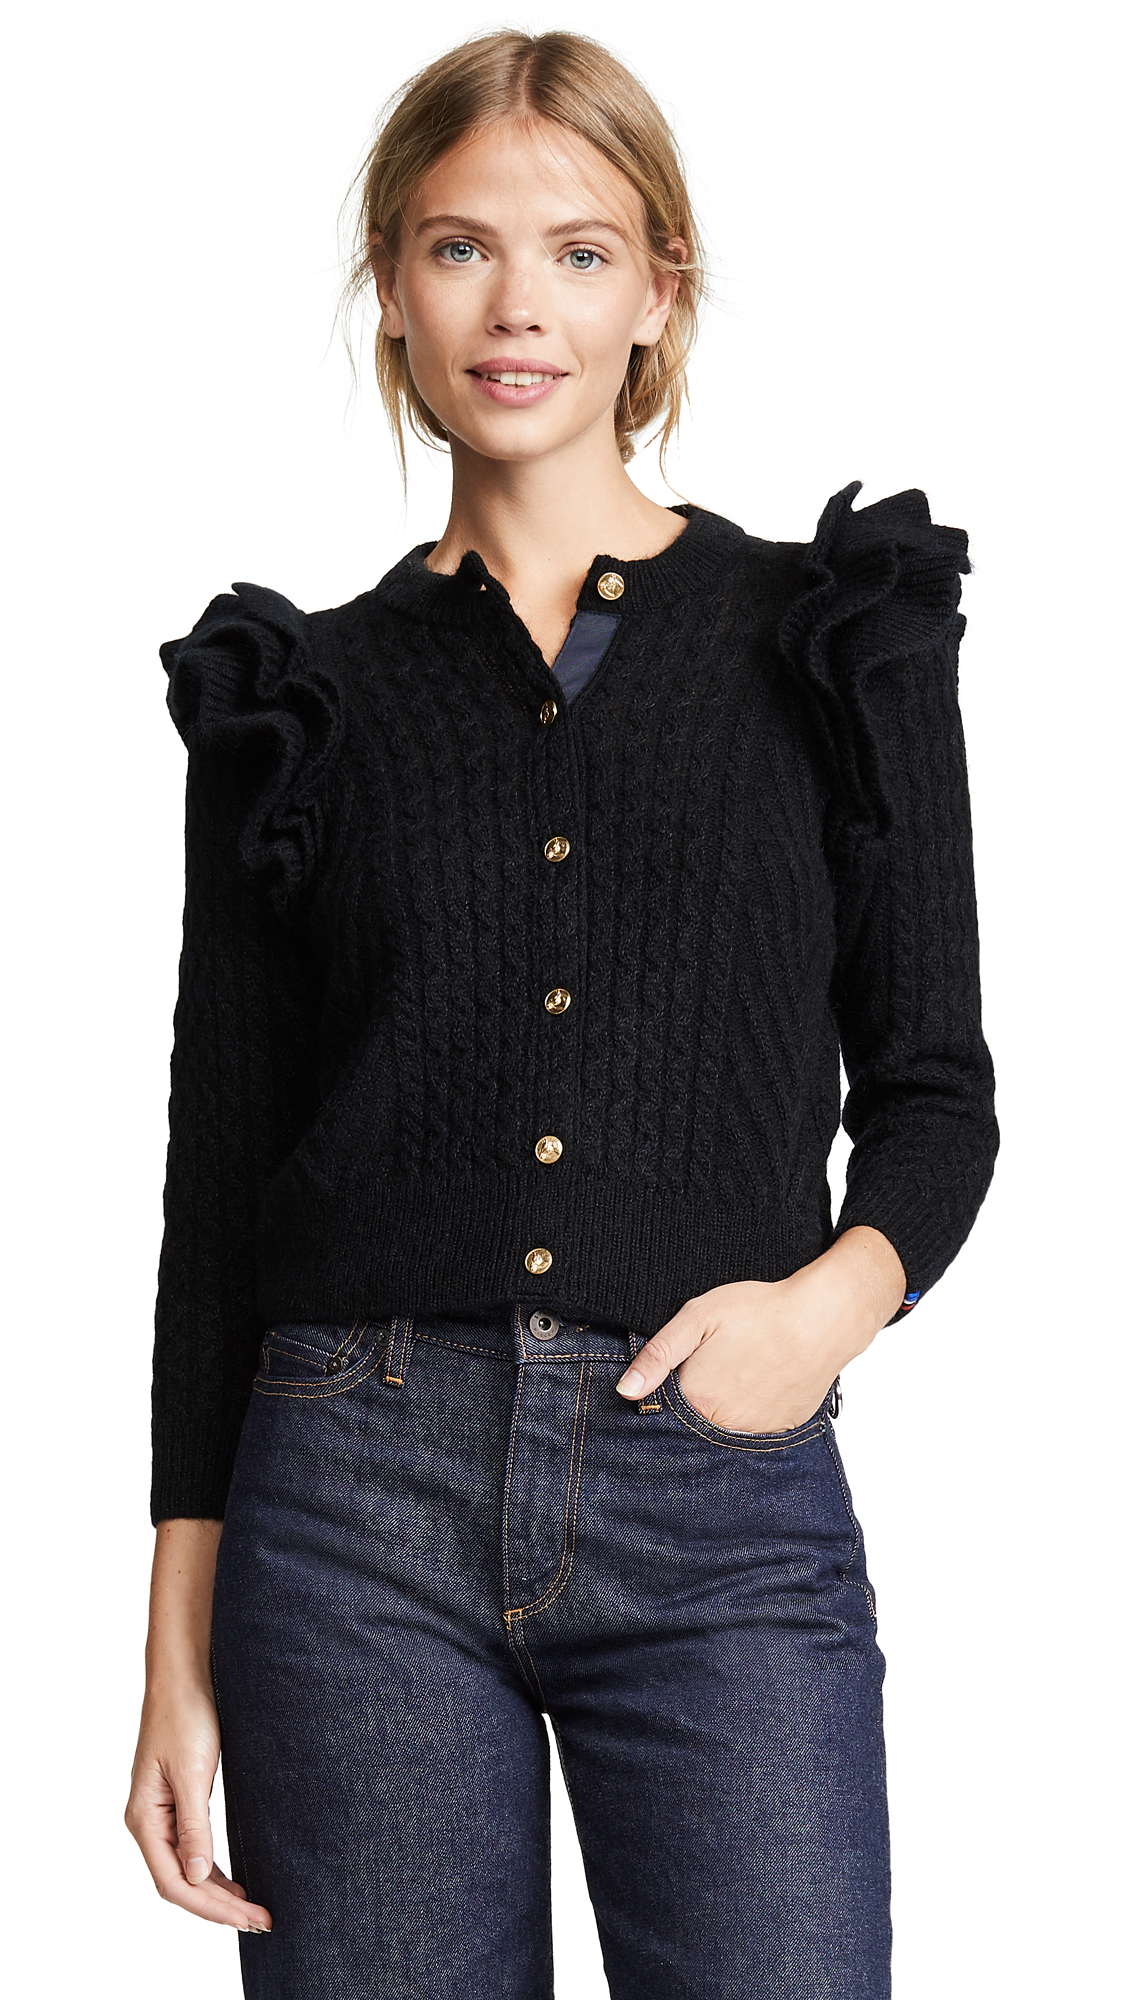 DEMYLEE X Clare V Nora Cardigan in Black Mohair